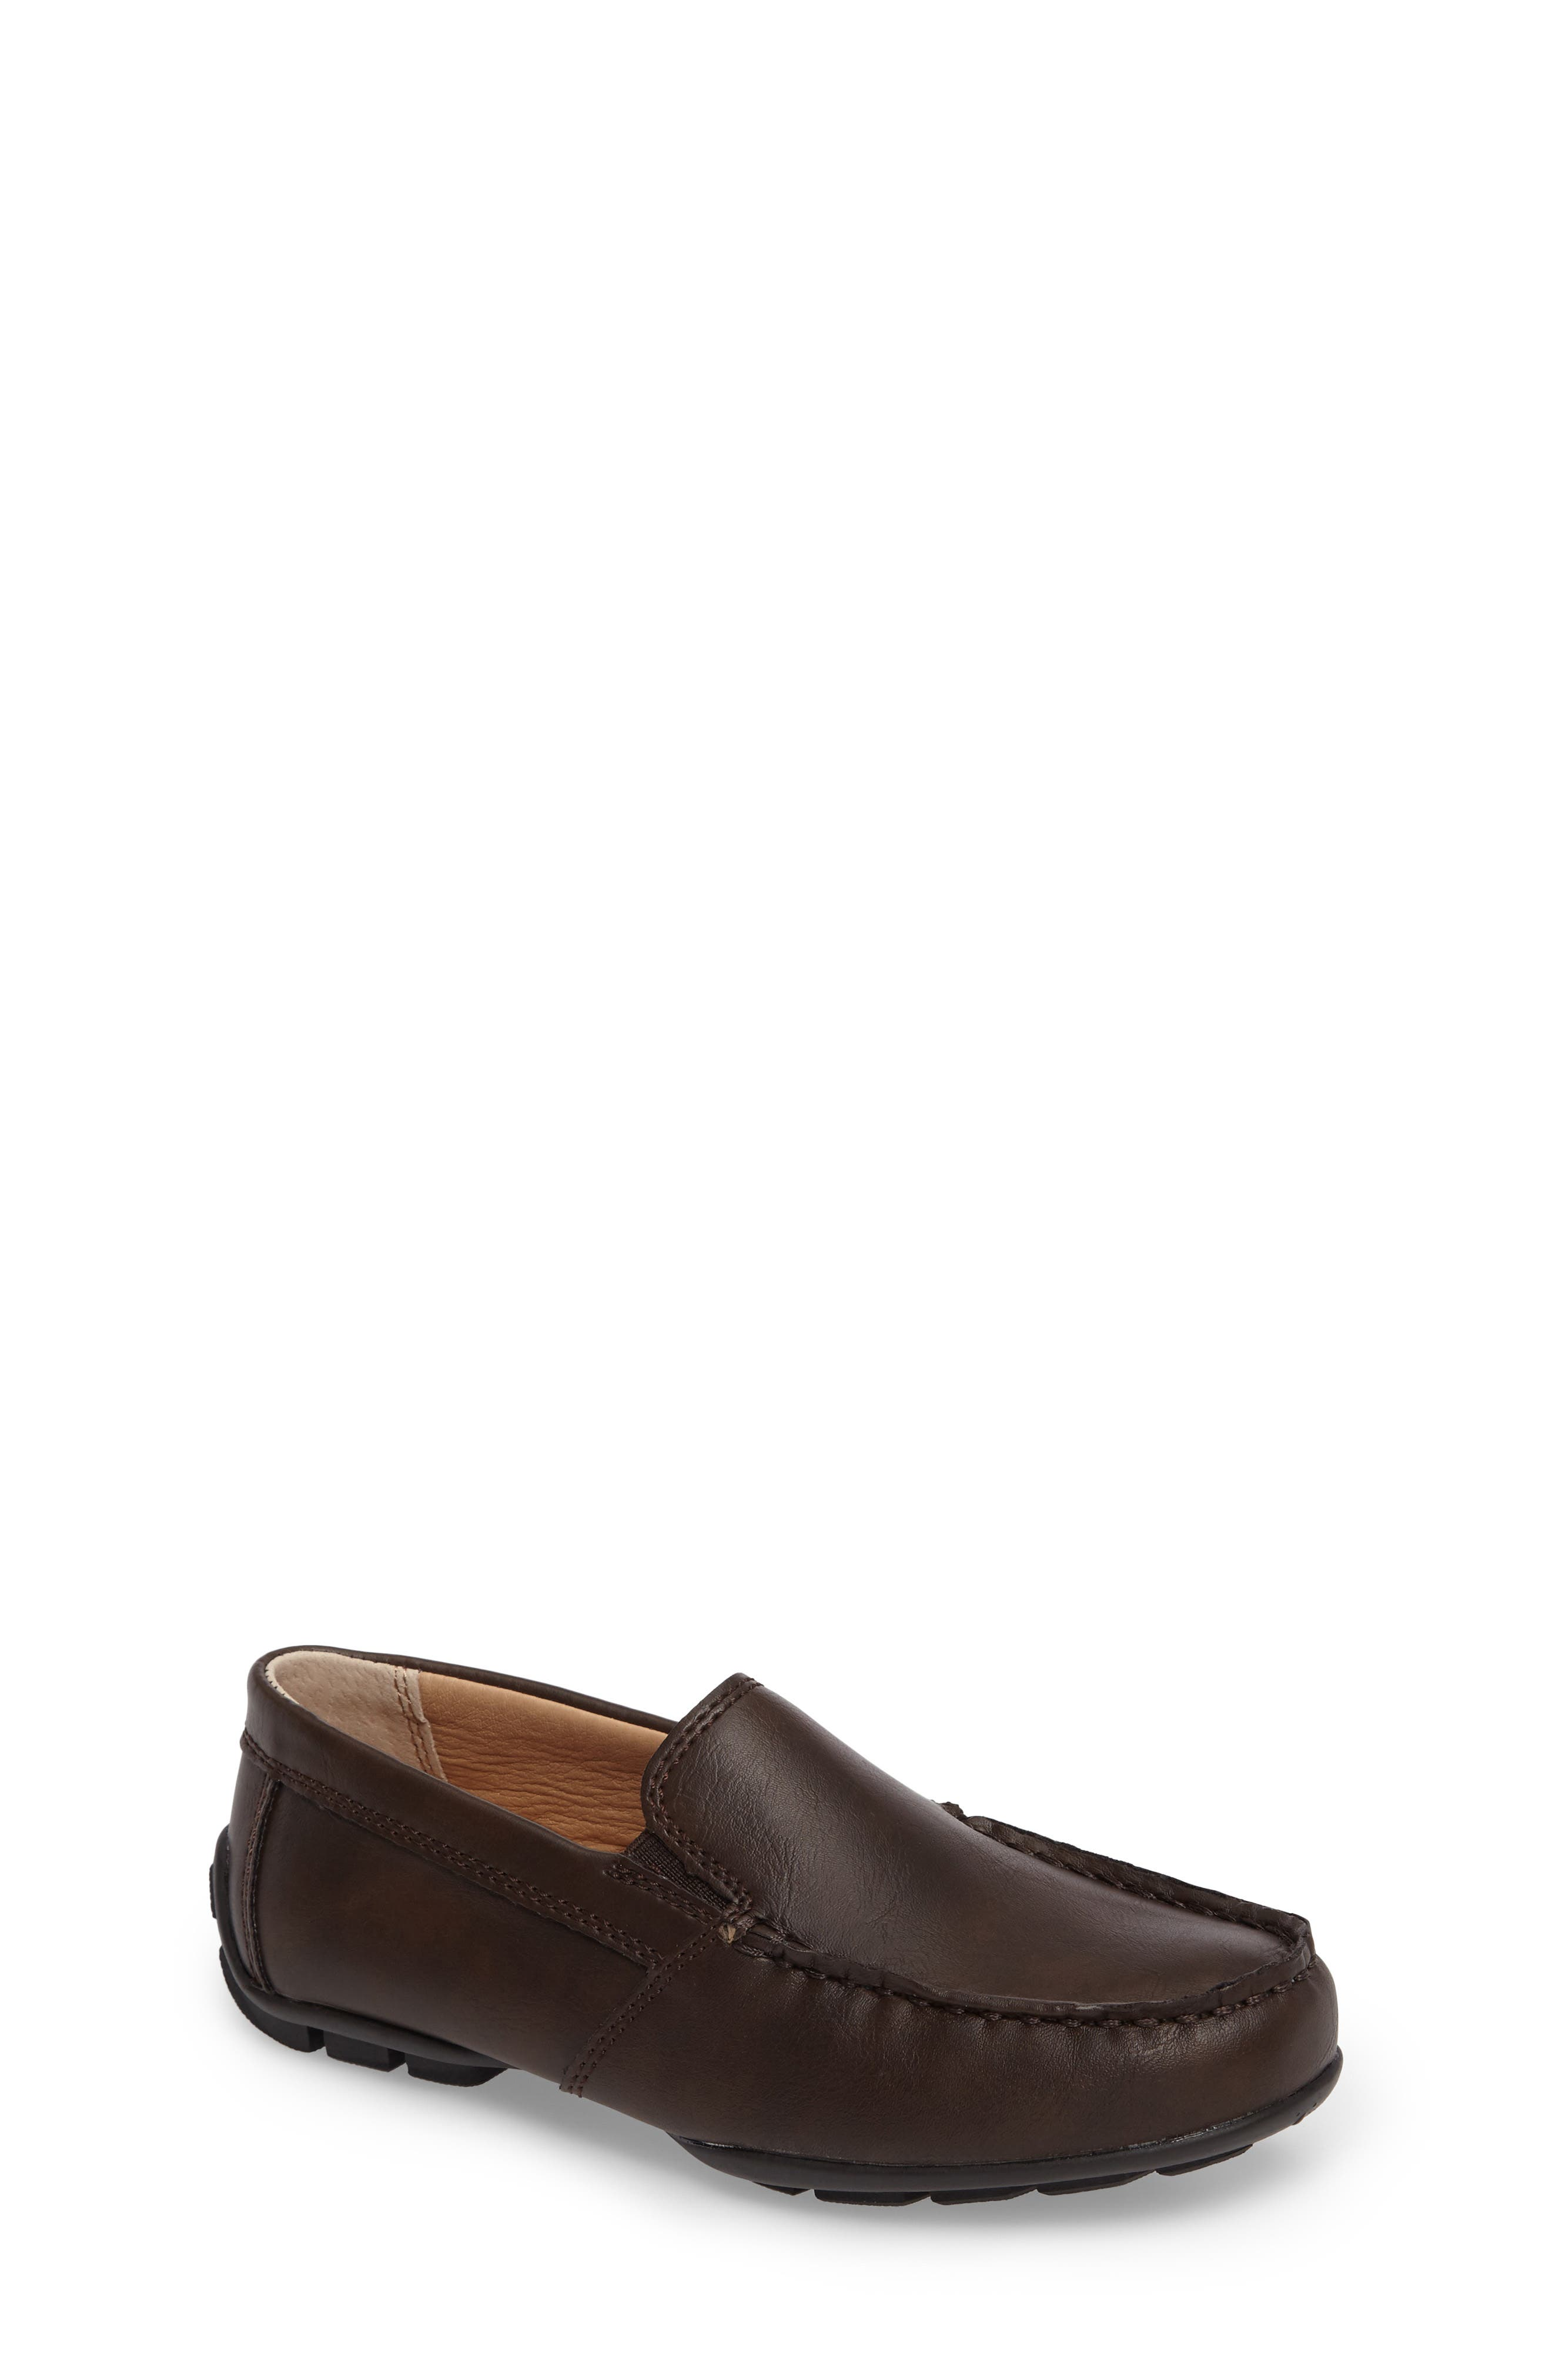 Nordstrom Mason Loafer (Walker, Toddler, Little Kid & Big Kid)